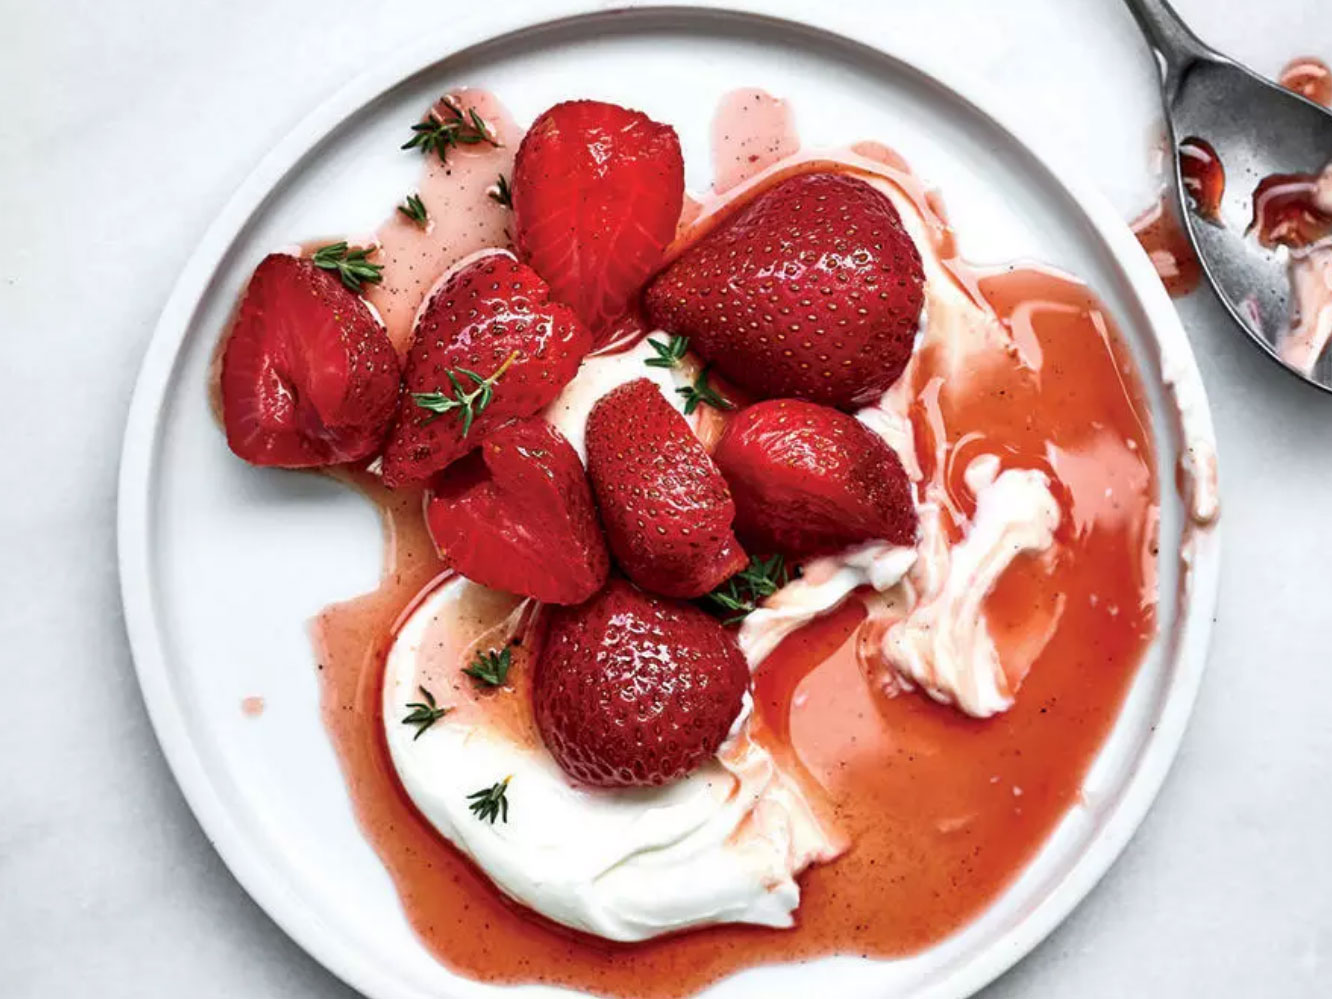 Rosé-Poached Berries Are the Warm Weather Dessert You Deserve